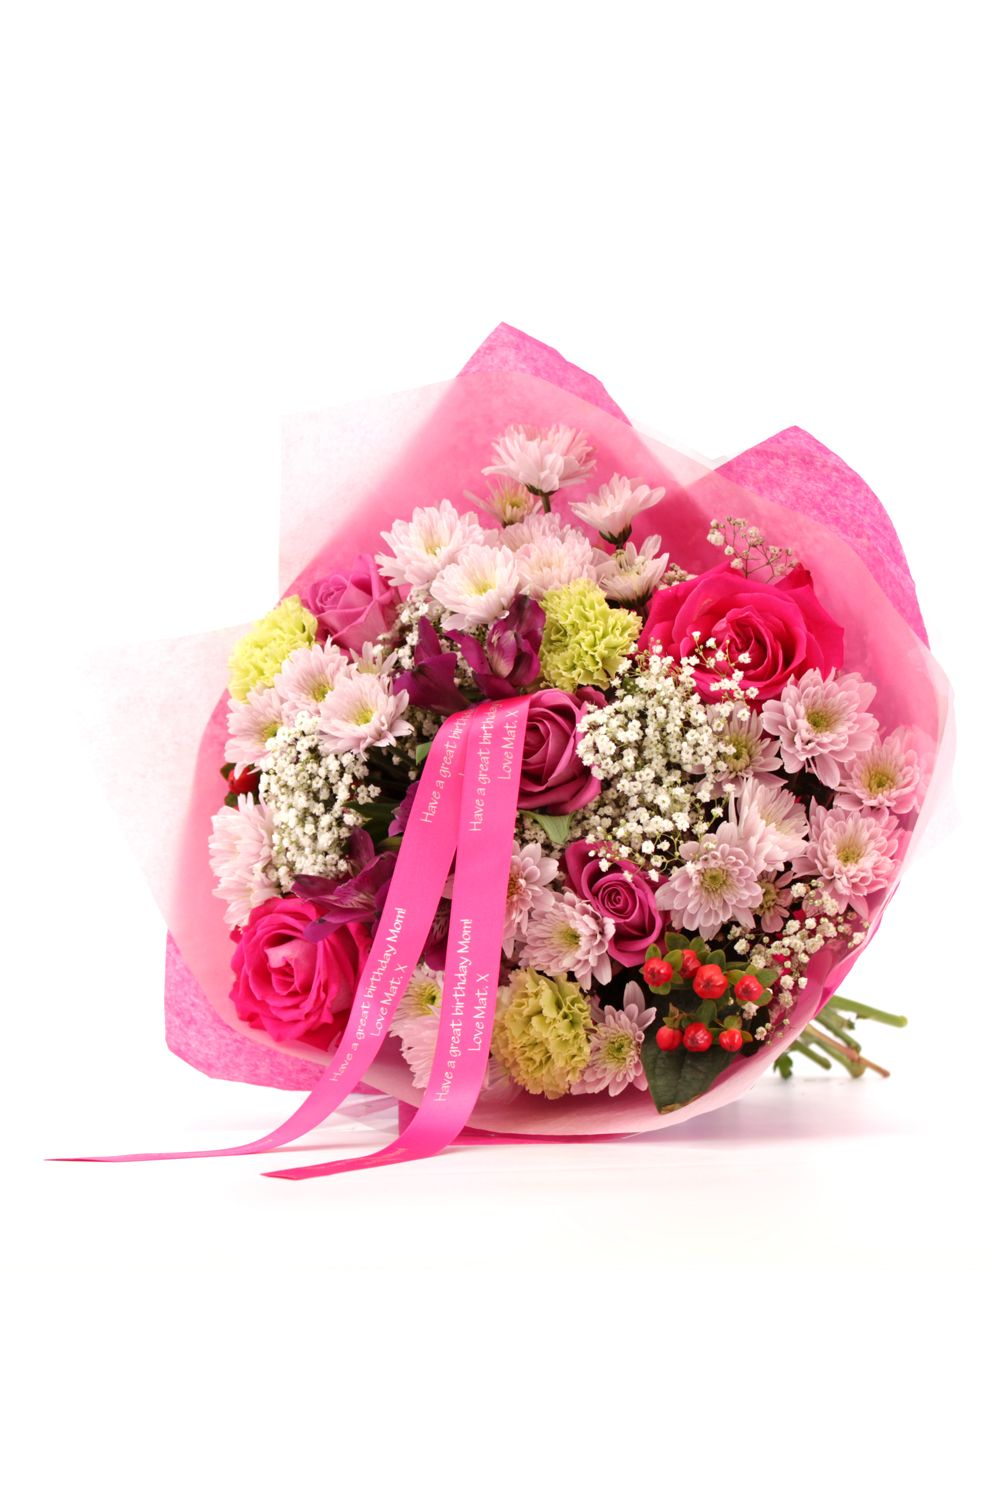 Image of Floric Birthday wishes bouquet